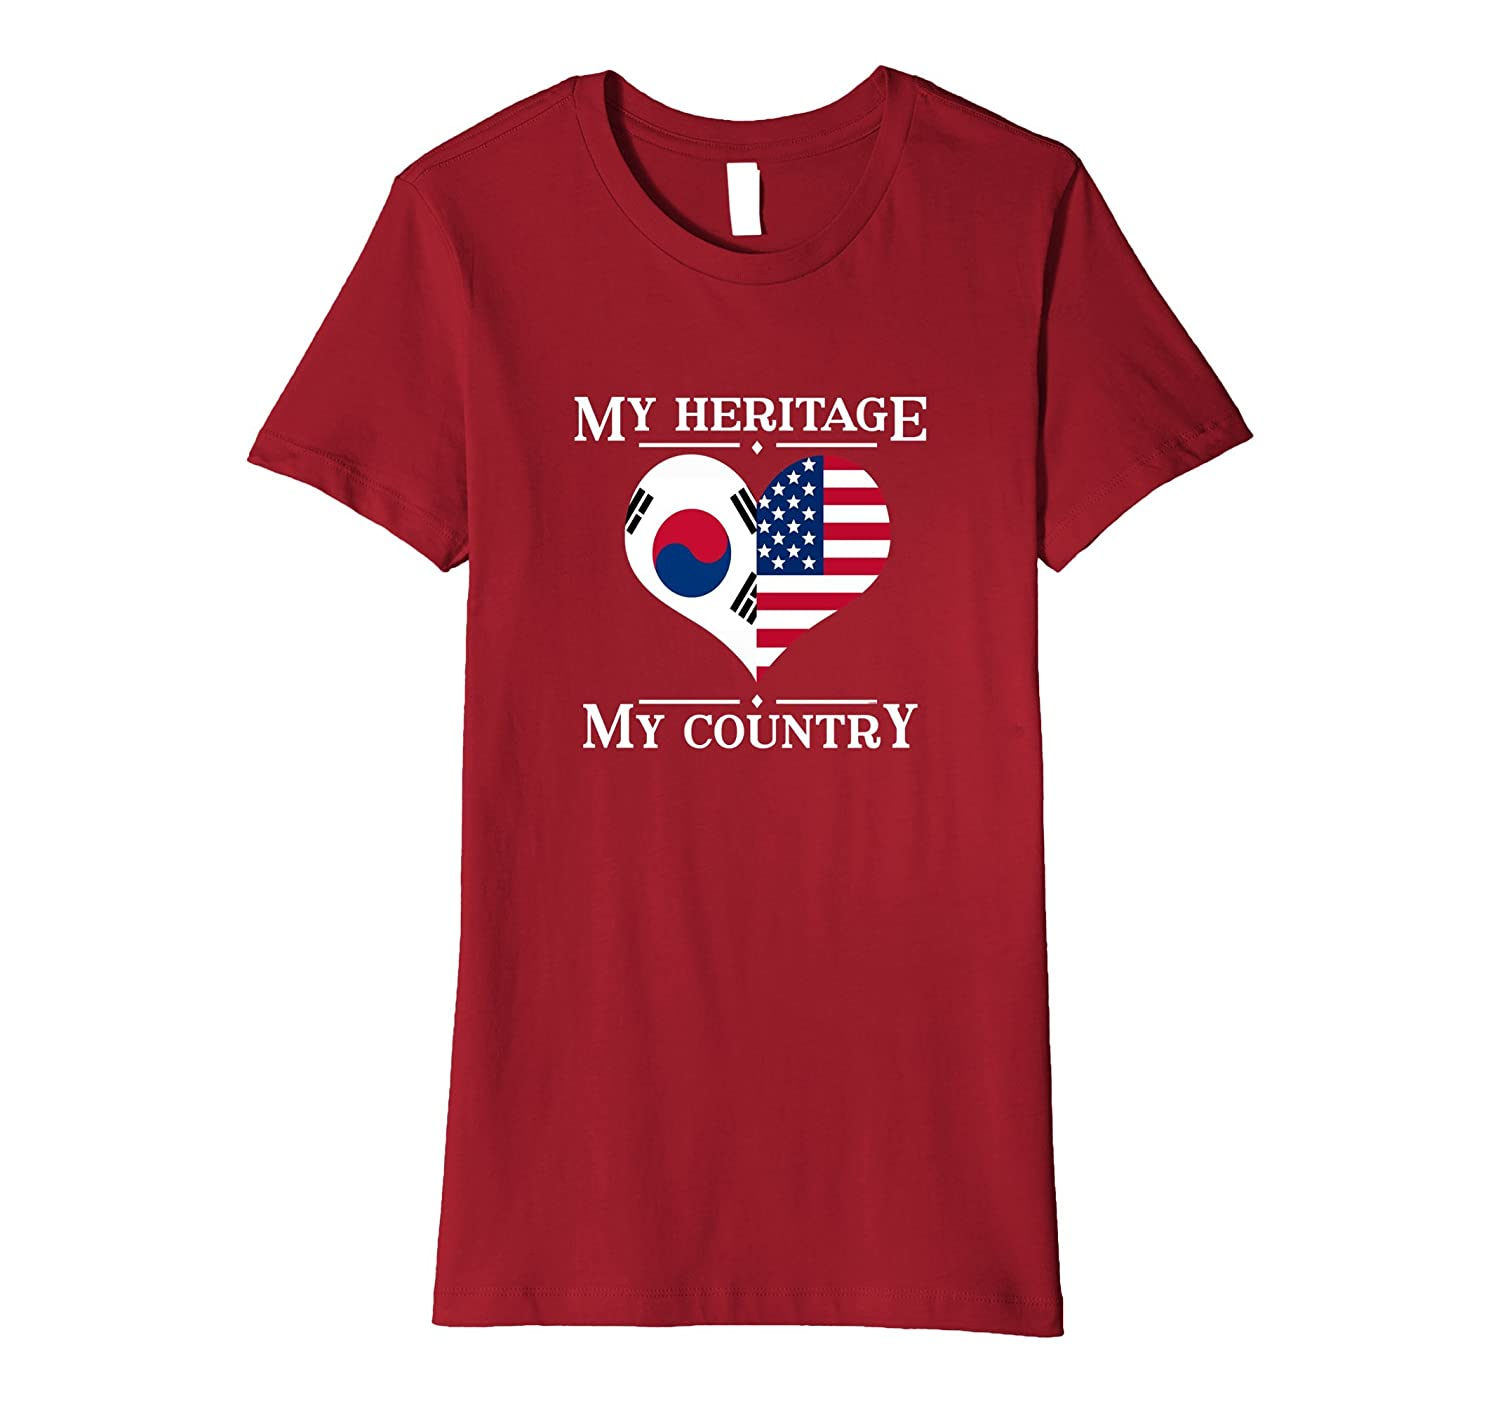 My Heritage My Country T-shirt Proud Korean American Gift